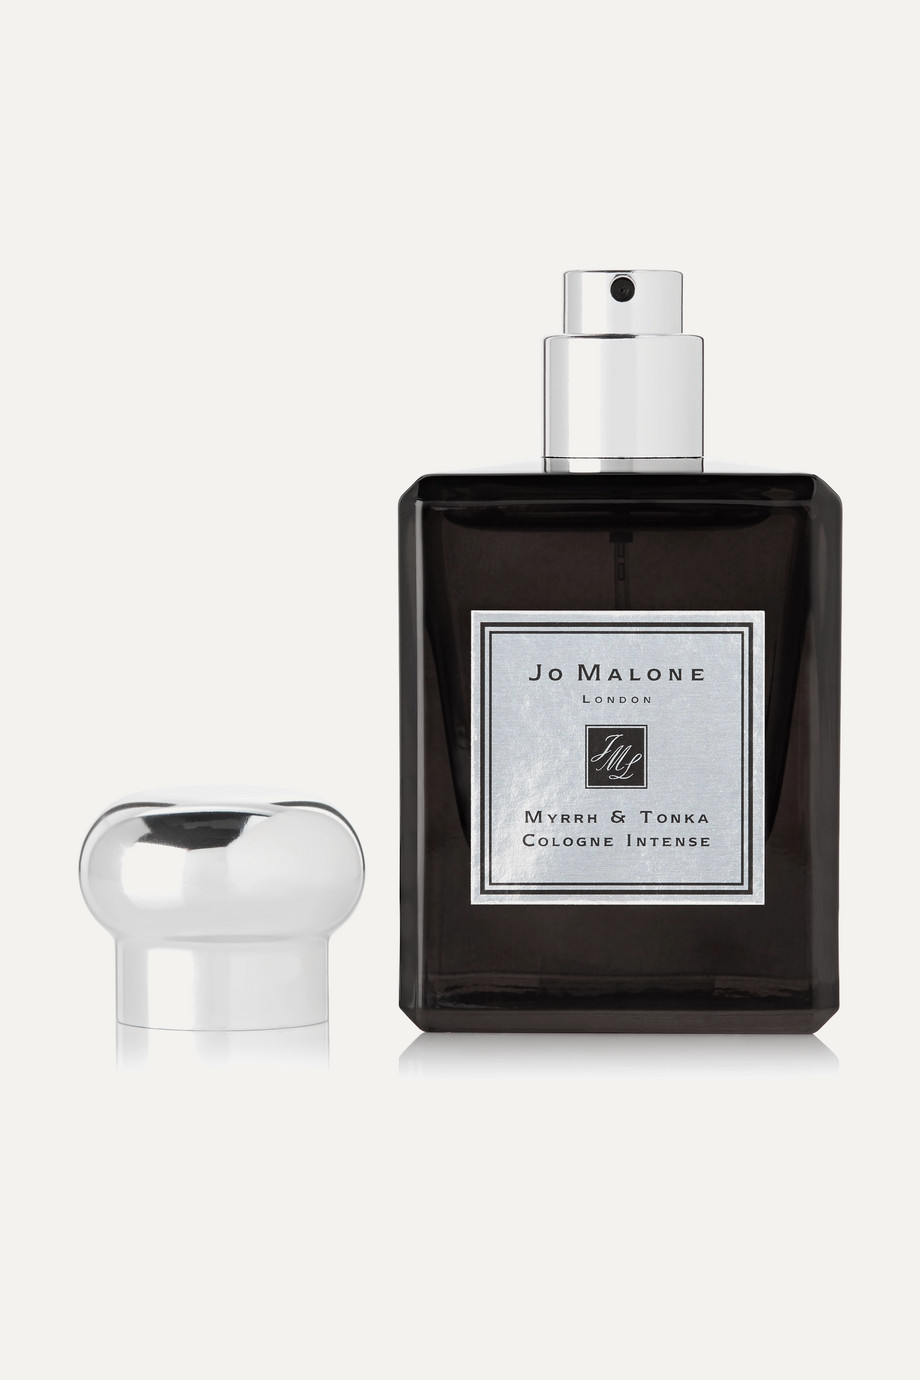 Jo Malone London Myrrh & Tonka Cologne Intense, 50ml